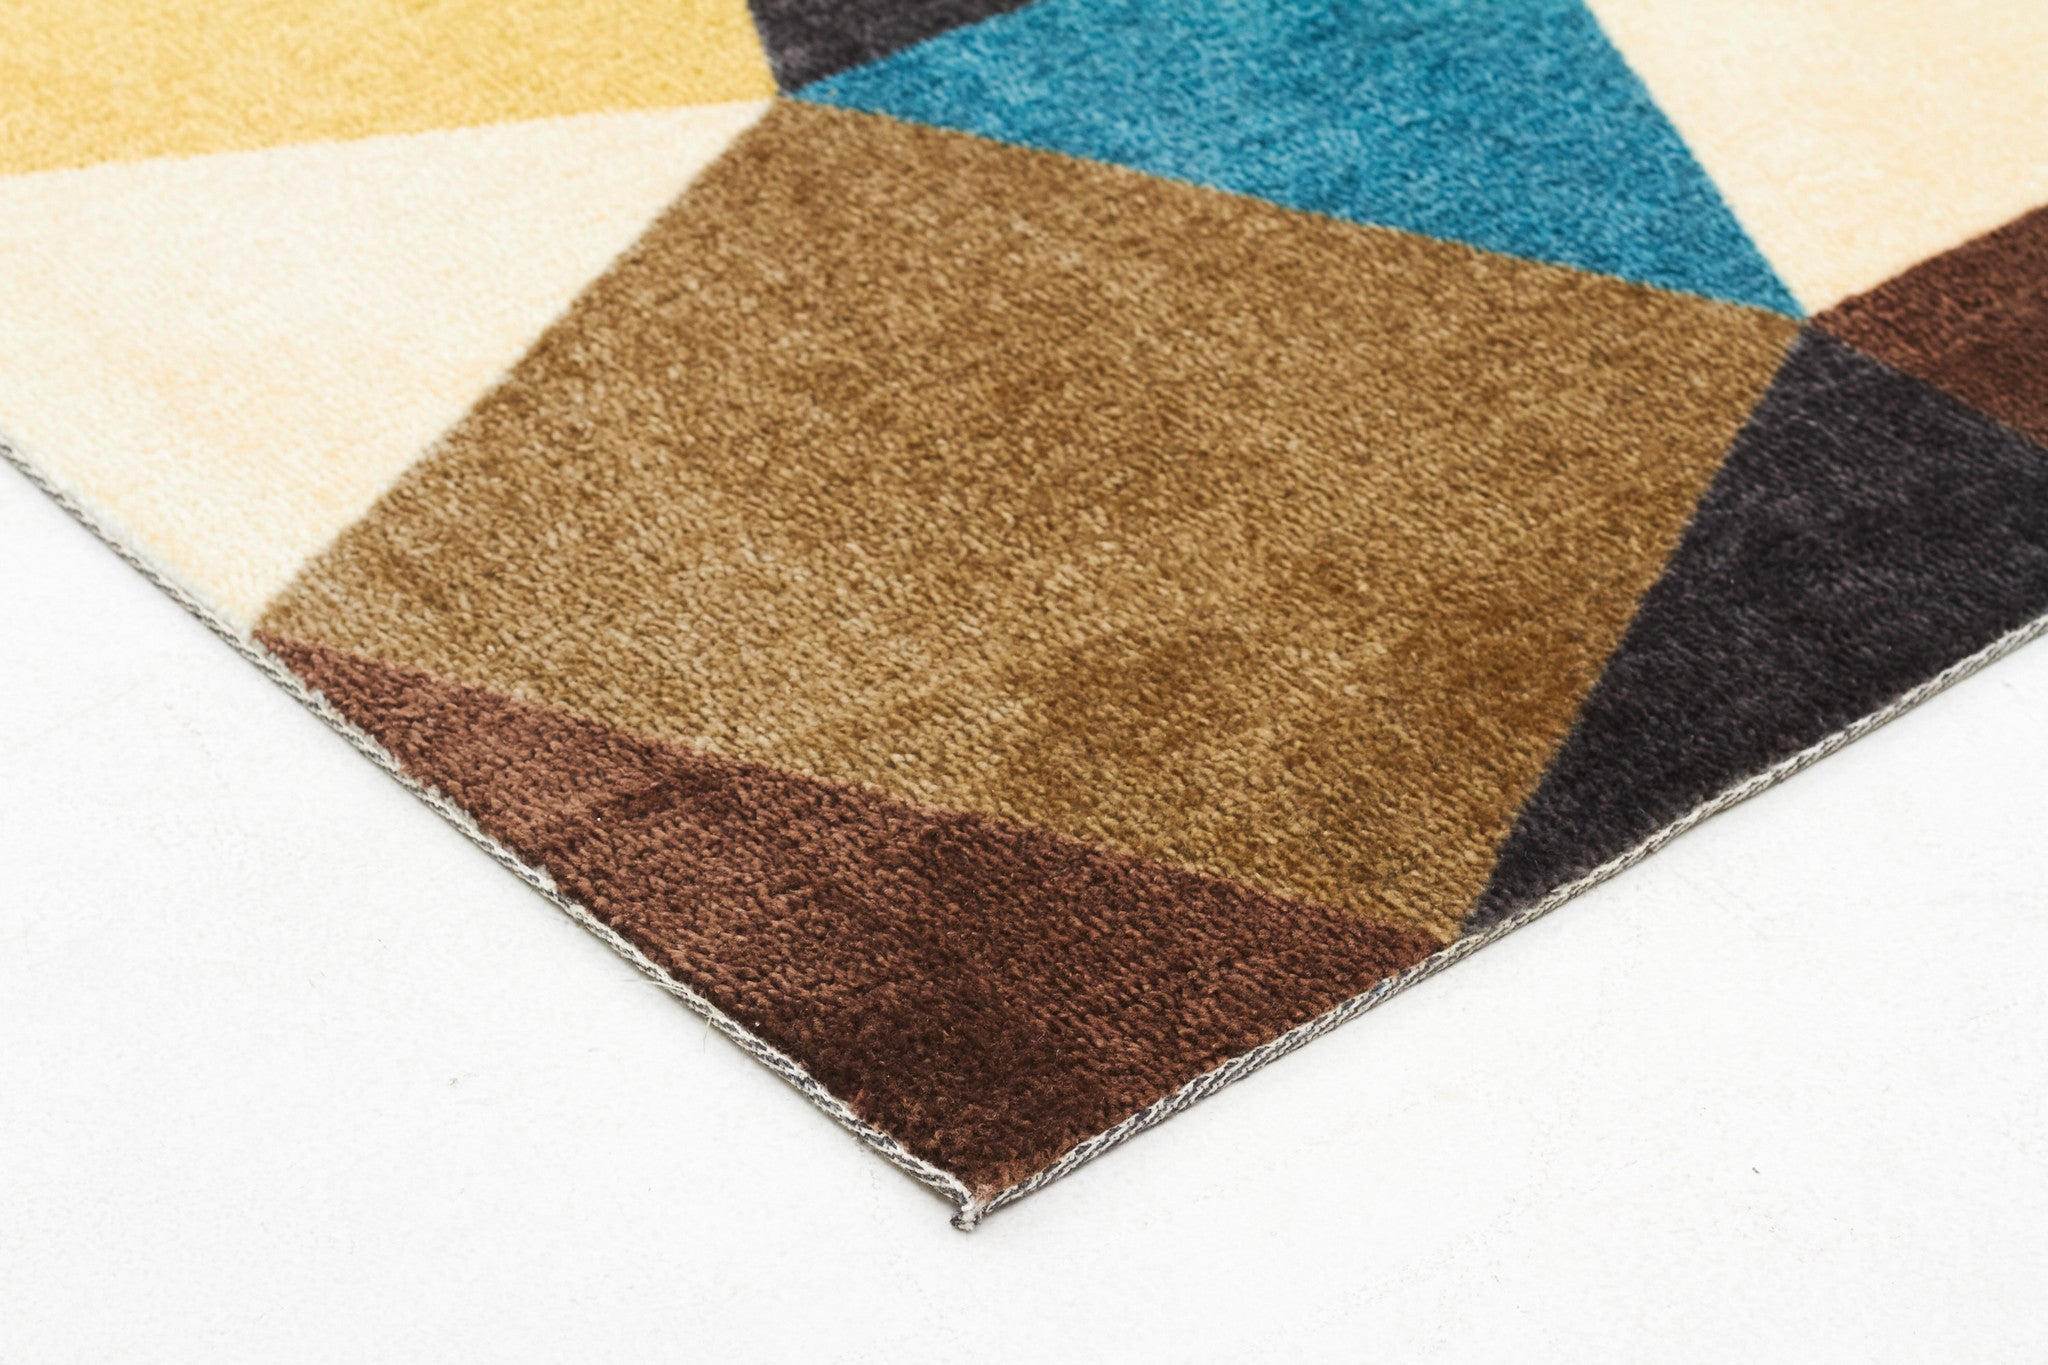 City 564 Rug - Blue Green Brown